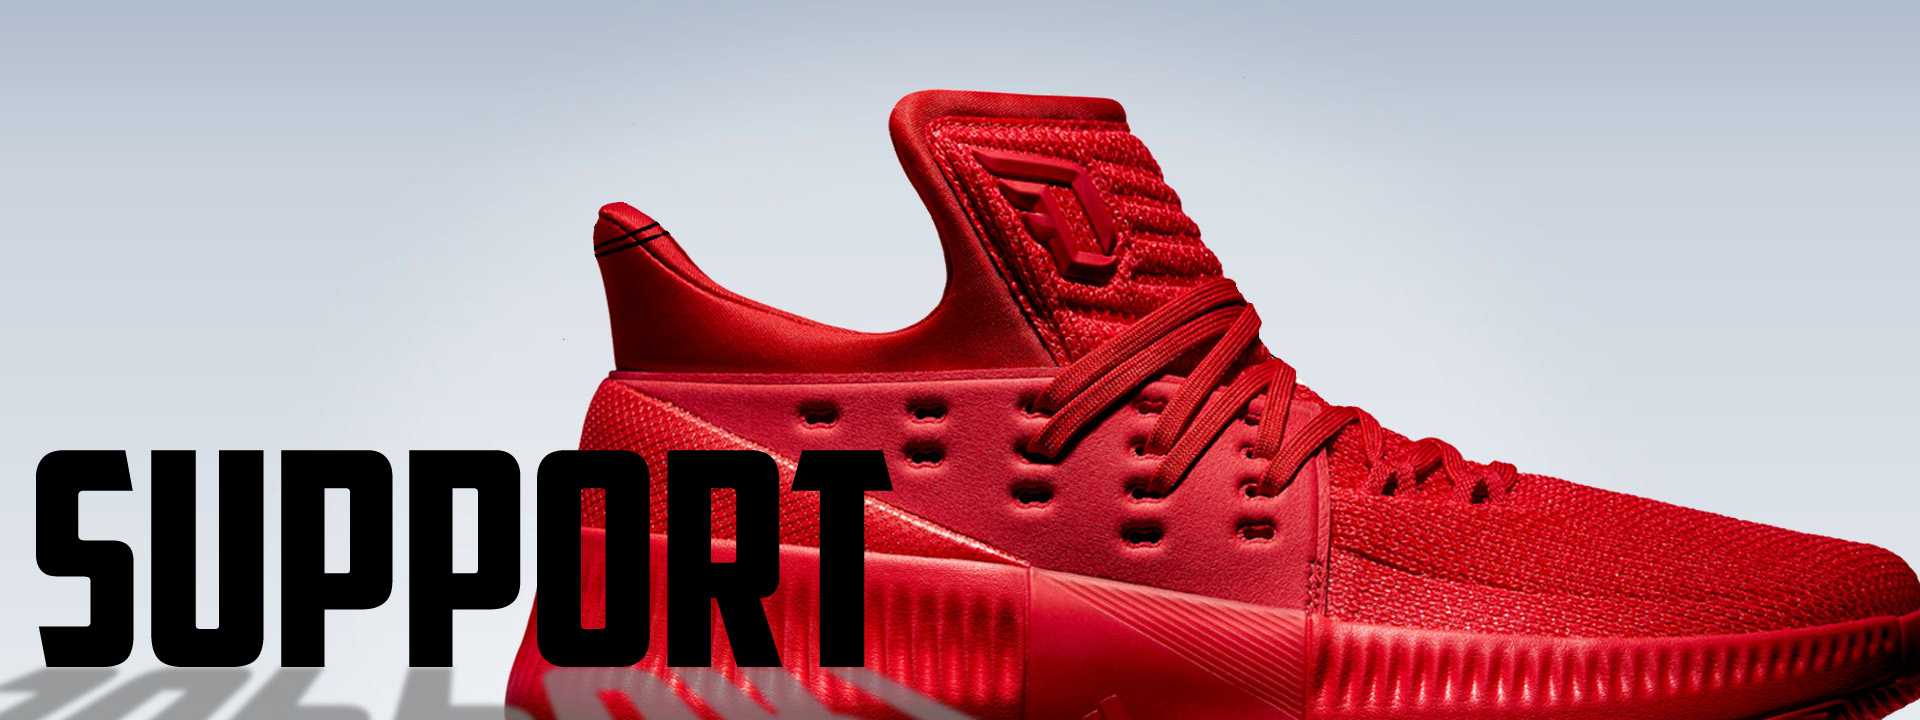 adidas dame 3 performance review support